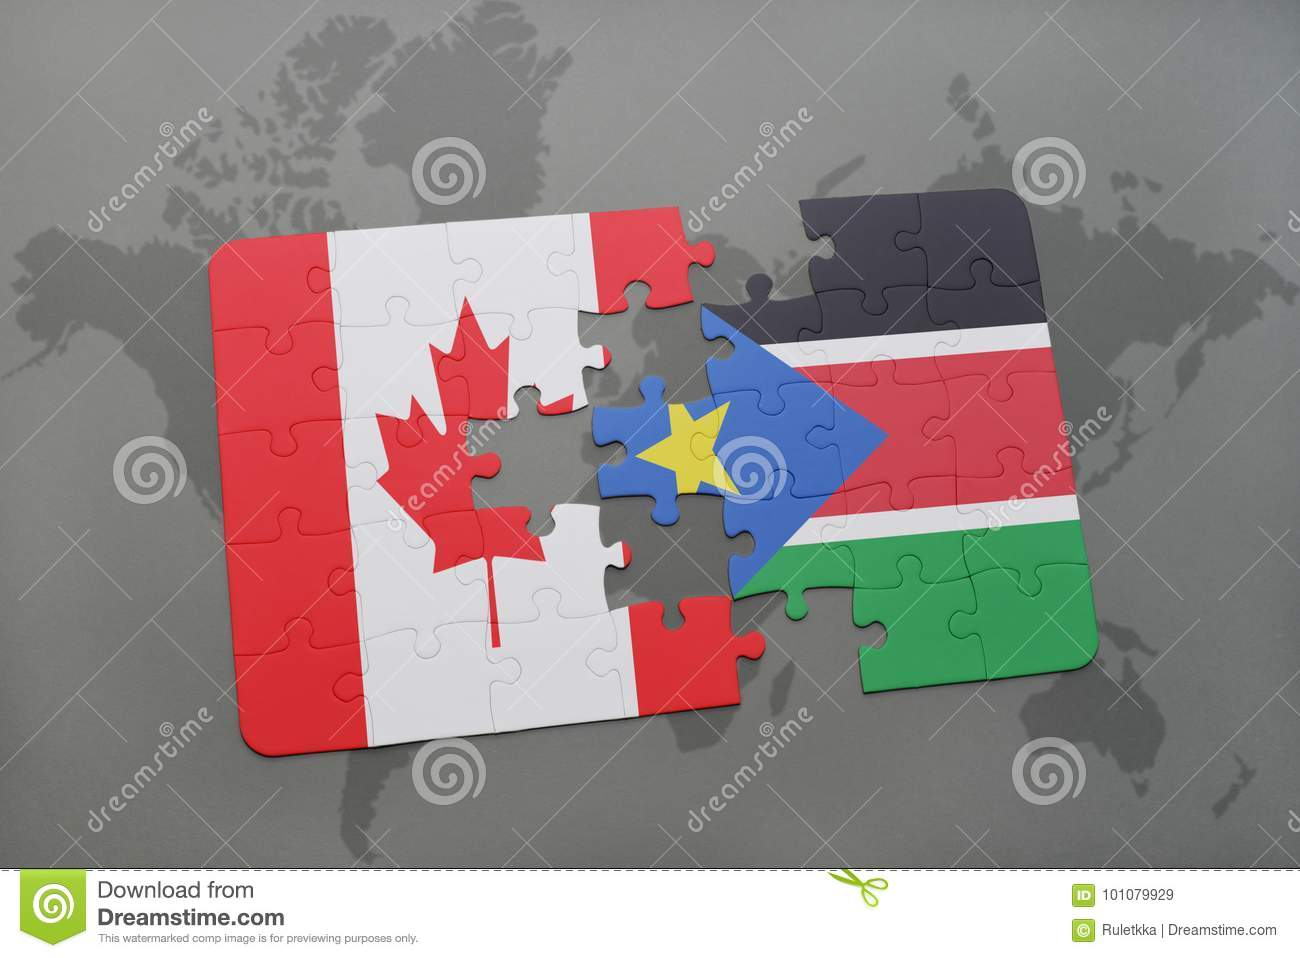 Puzzle with the national flag of canada and south sudan on a world download puzzle with the national flag of canada and south sudan on a world map background gumiabroncs Images